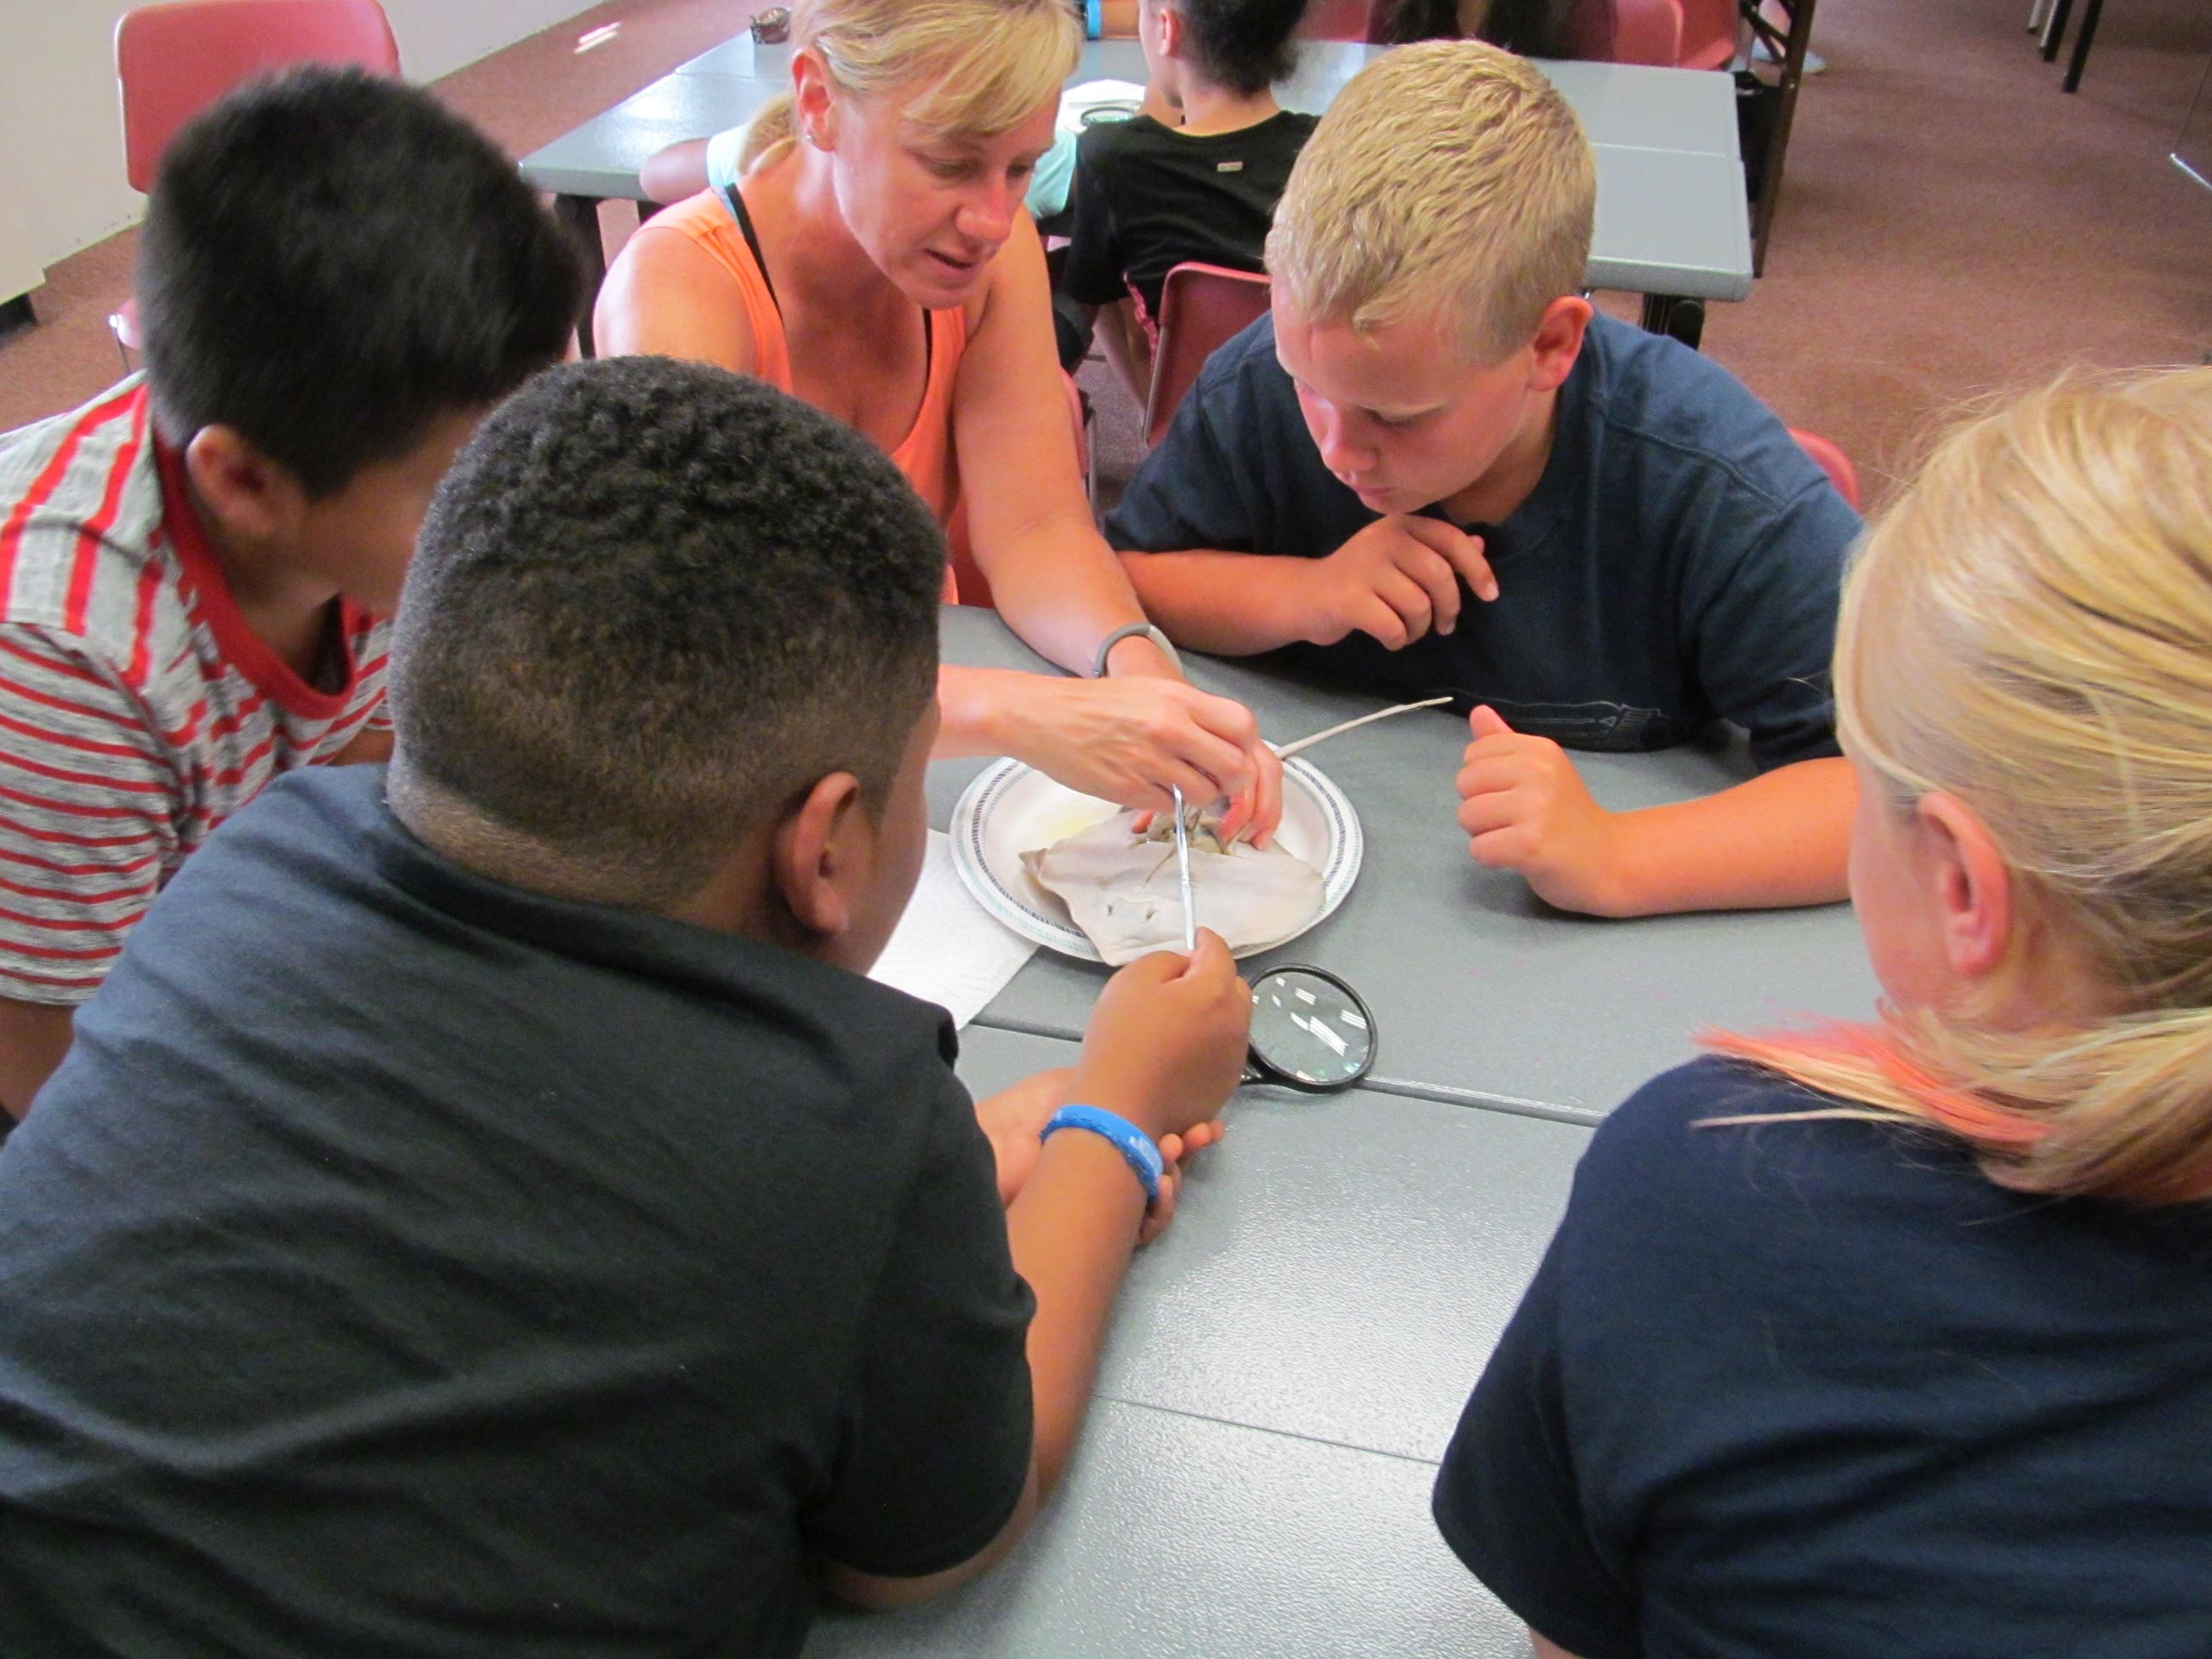 teens circled around a dissection specimen at Rock Island Library